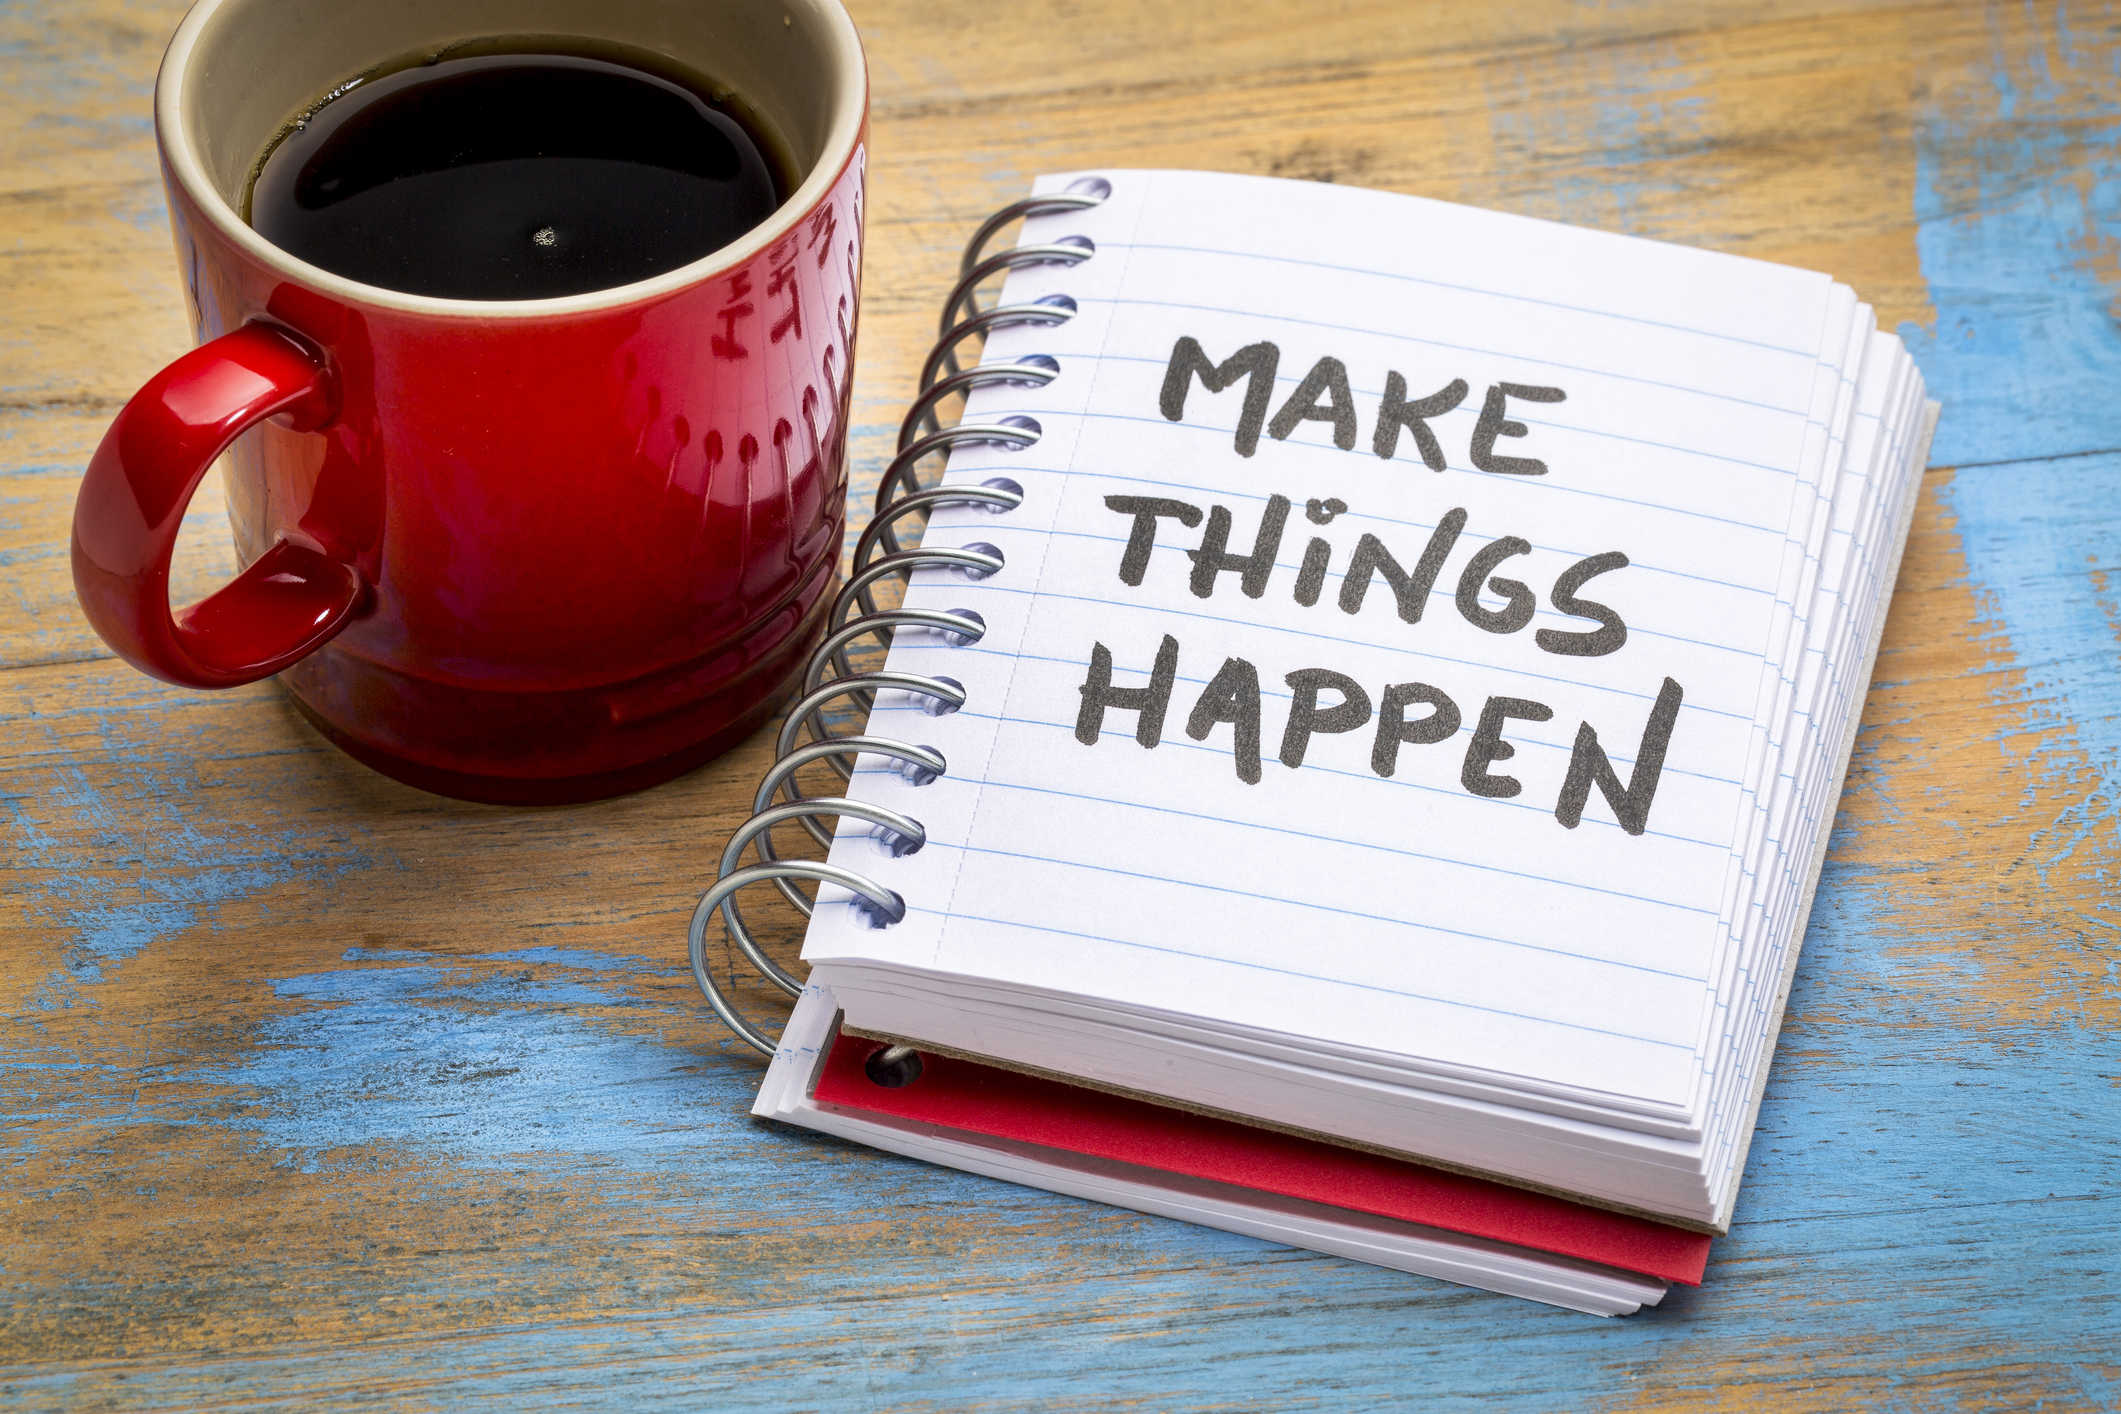 Are you ready to make things happen?